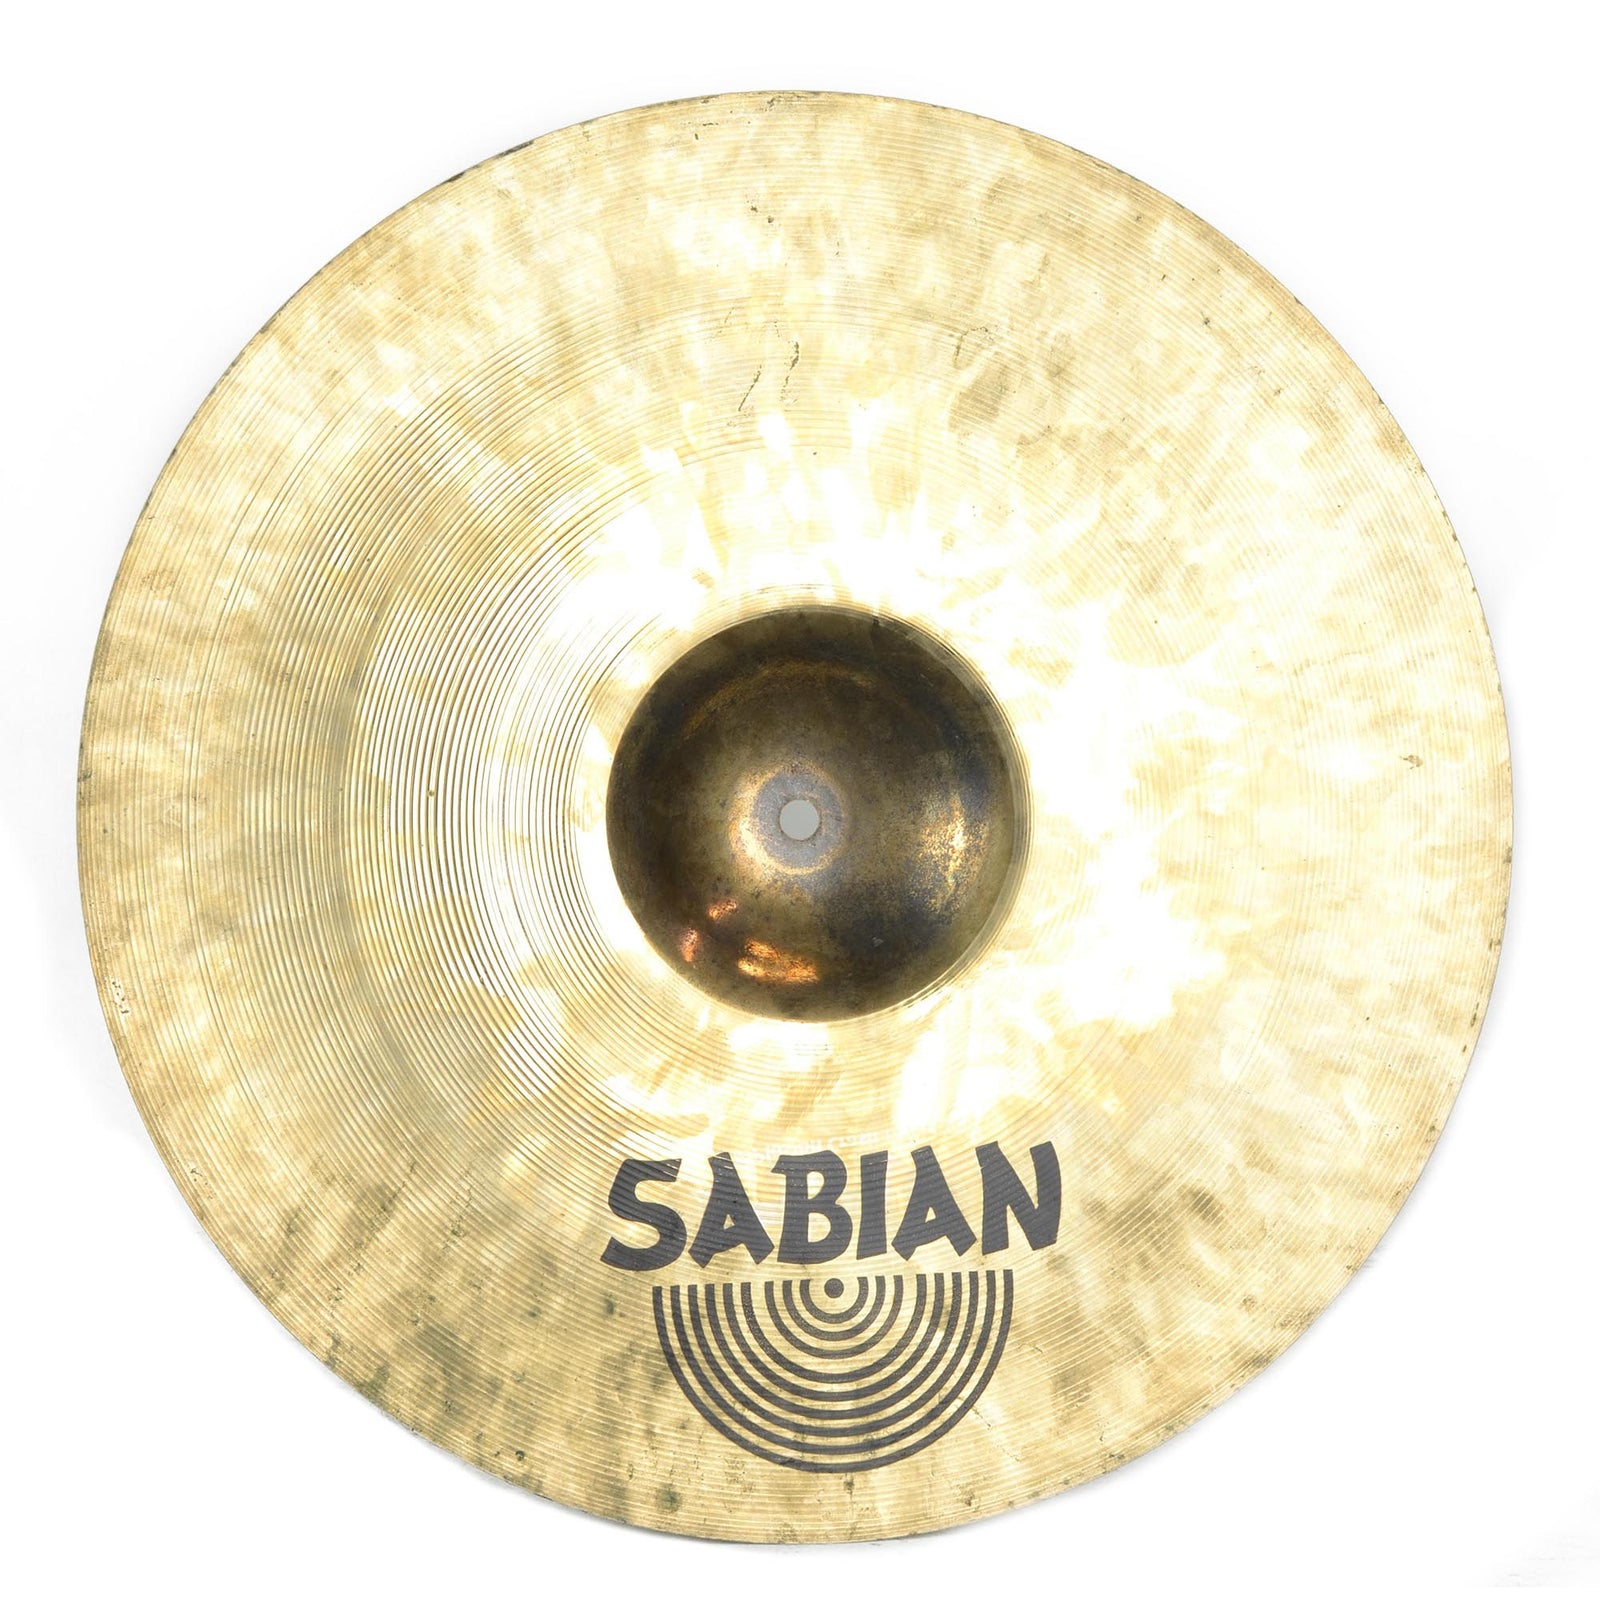 "Sabian X-Plosion 18"" Crash - Used"